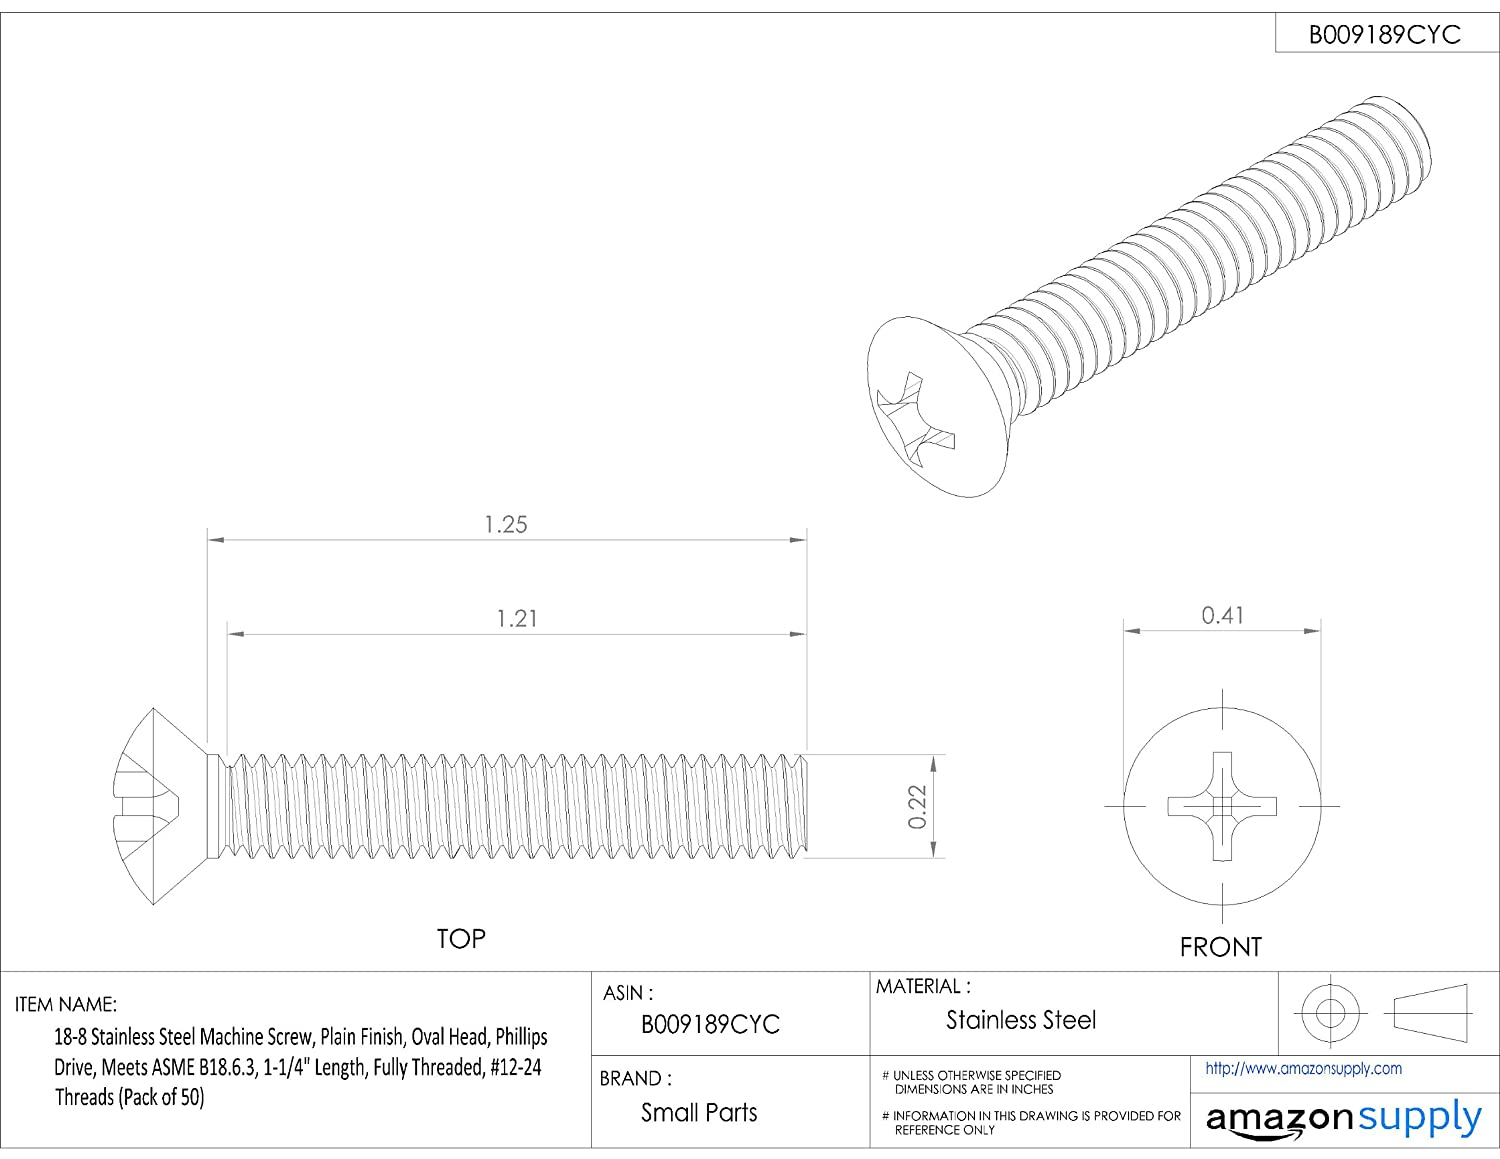 1-1//4 Length #12-24 UNC Threads Oval Head Meets ASME B18.6.3 18-8 Stainless Steel Machine Screw Phillips Drive Fully Threaded Plain Finish Pack of 50